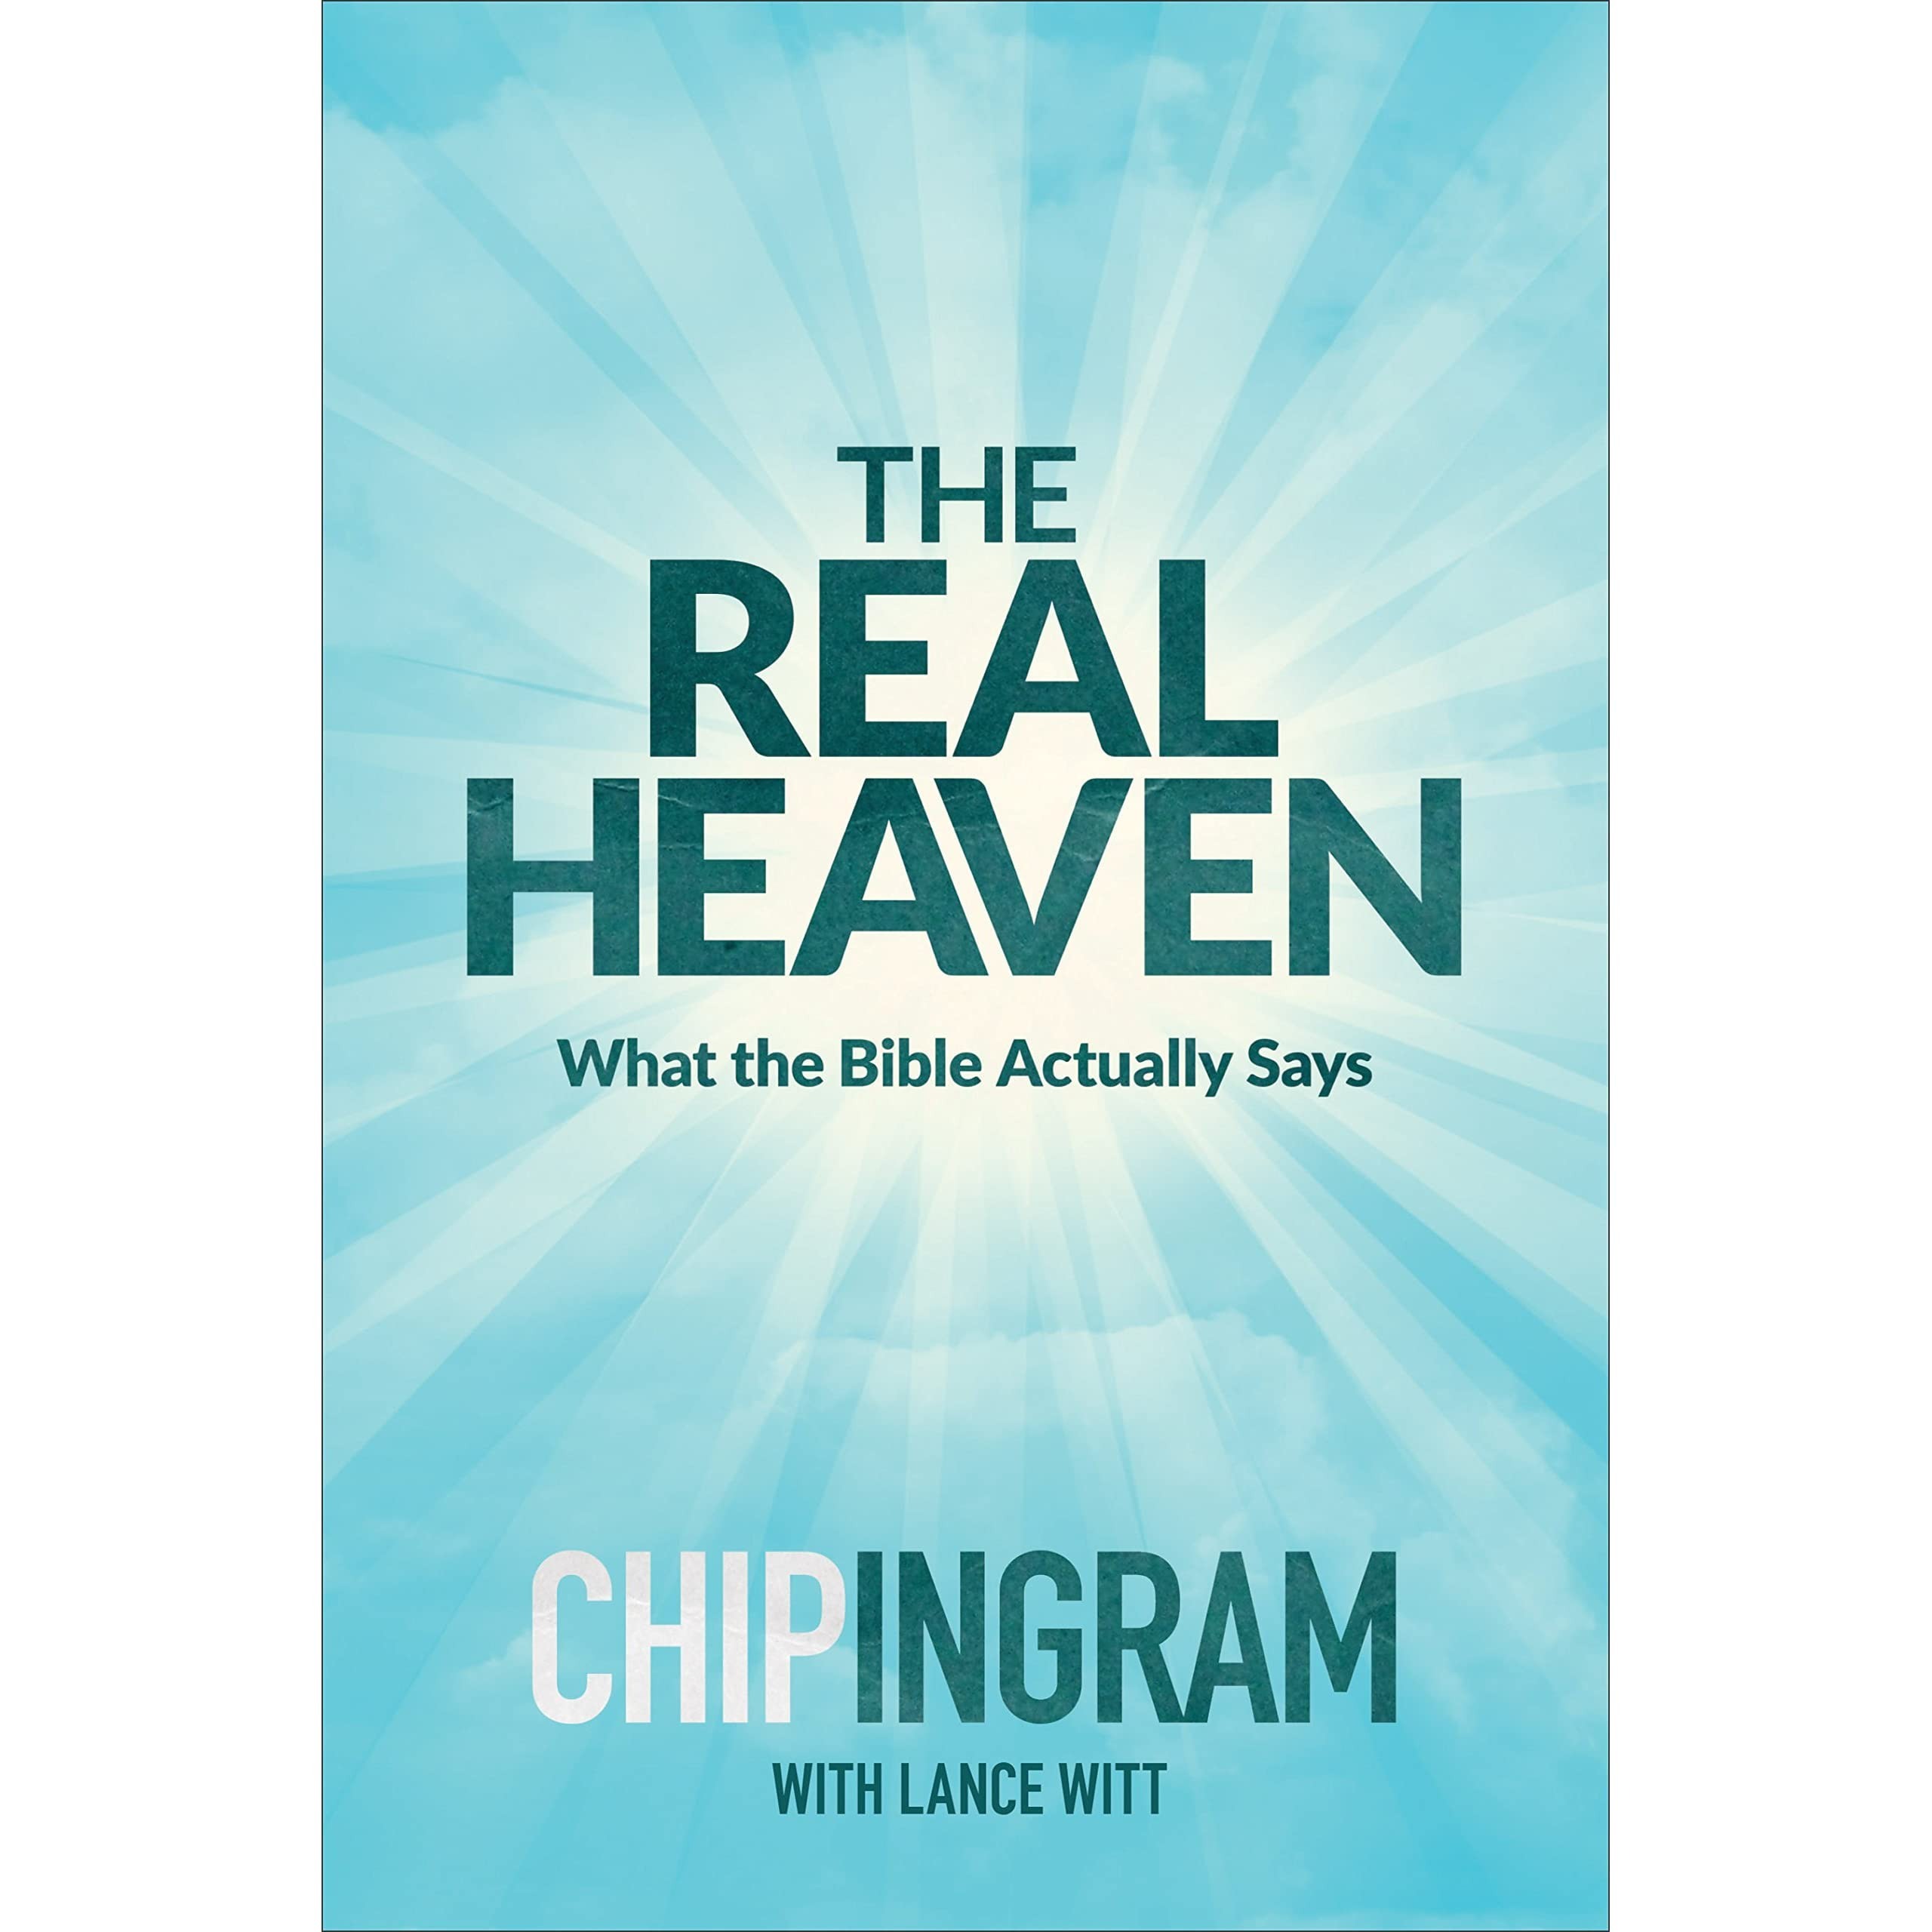 Heaven Is For Real Book Quotes: Book Giveaway For The Real Heaven: What The Bible Actually